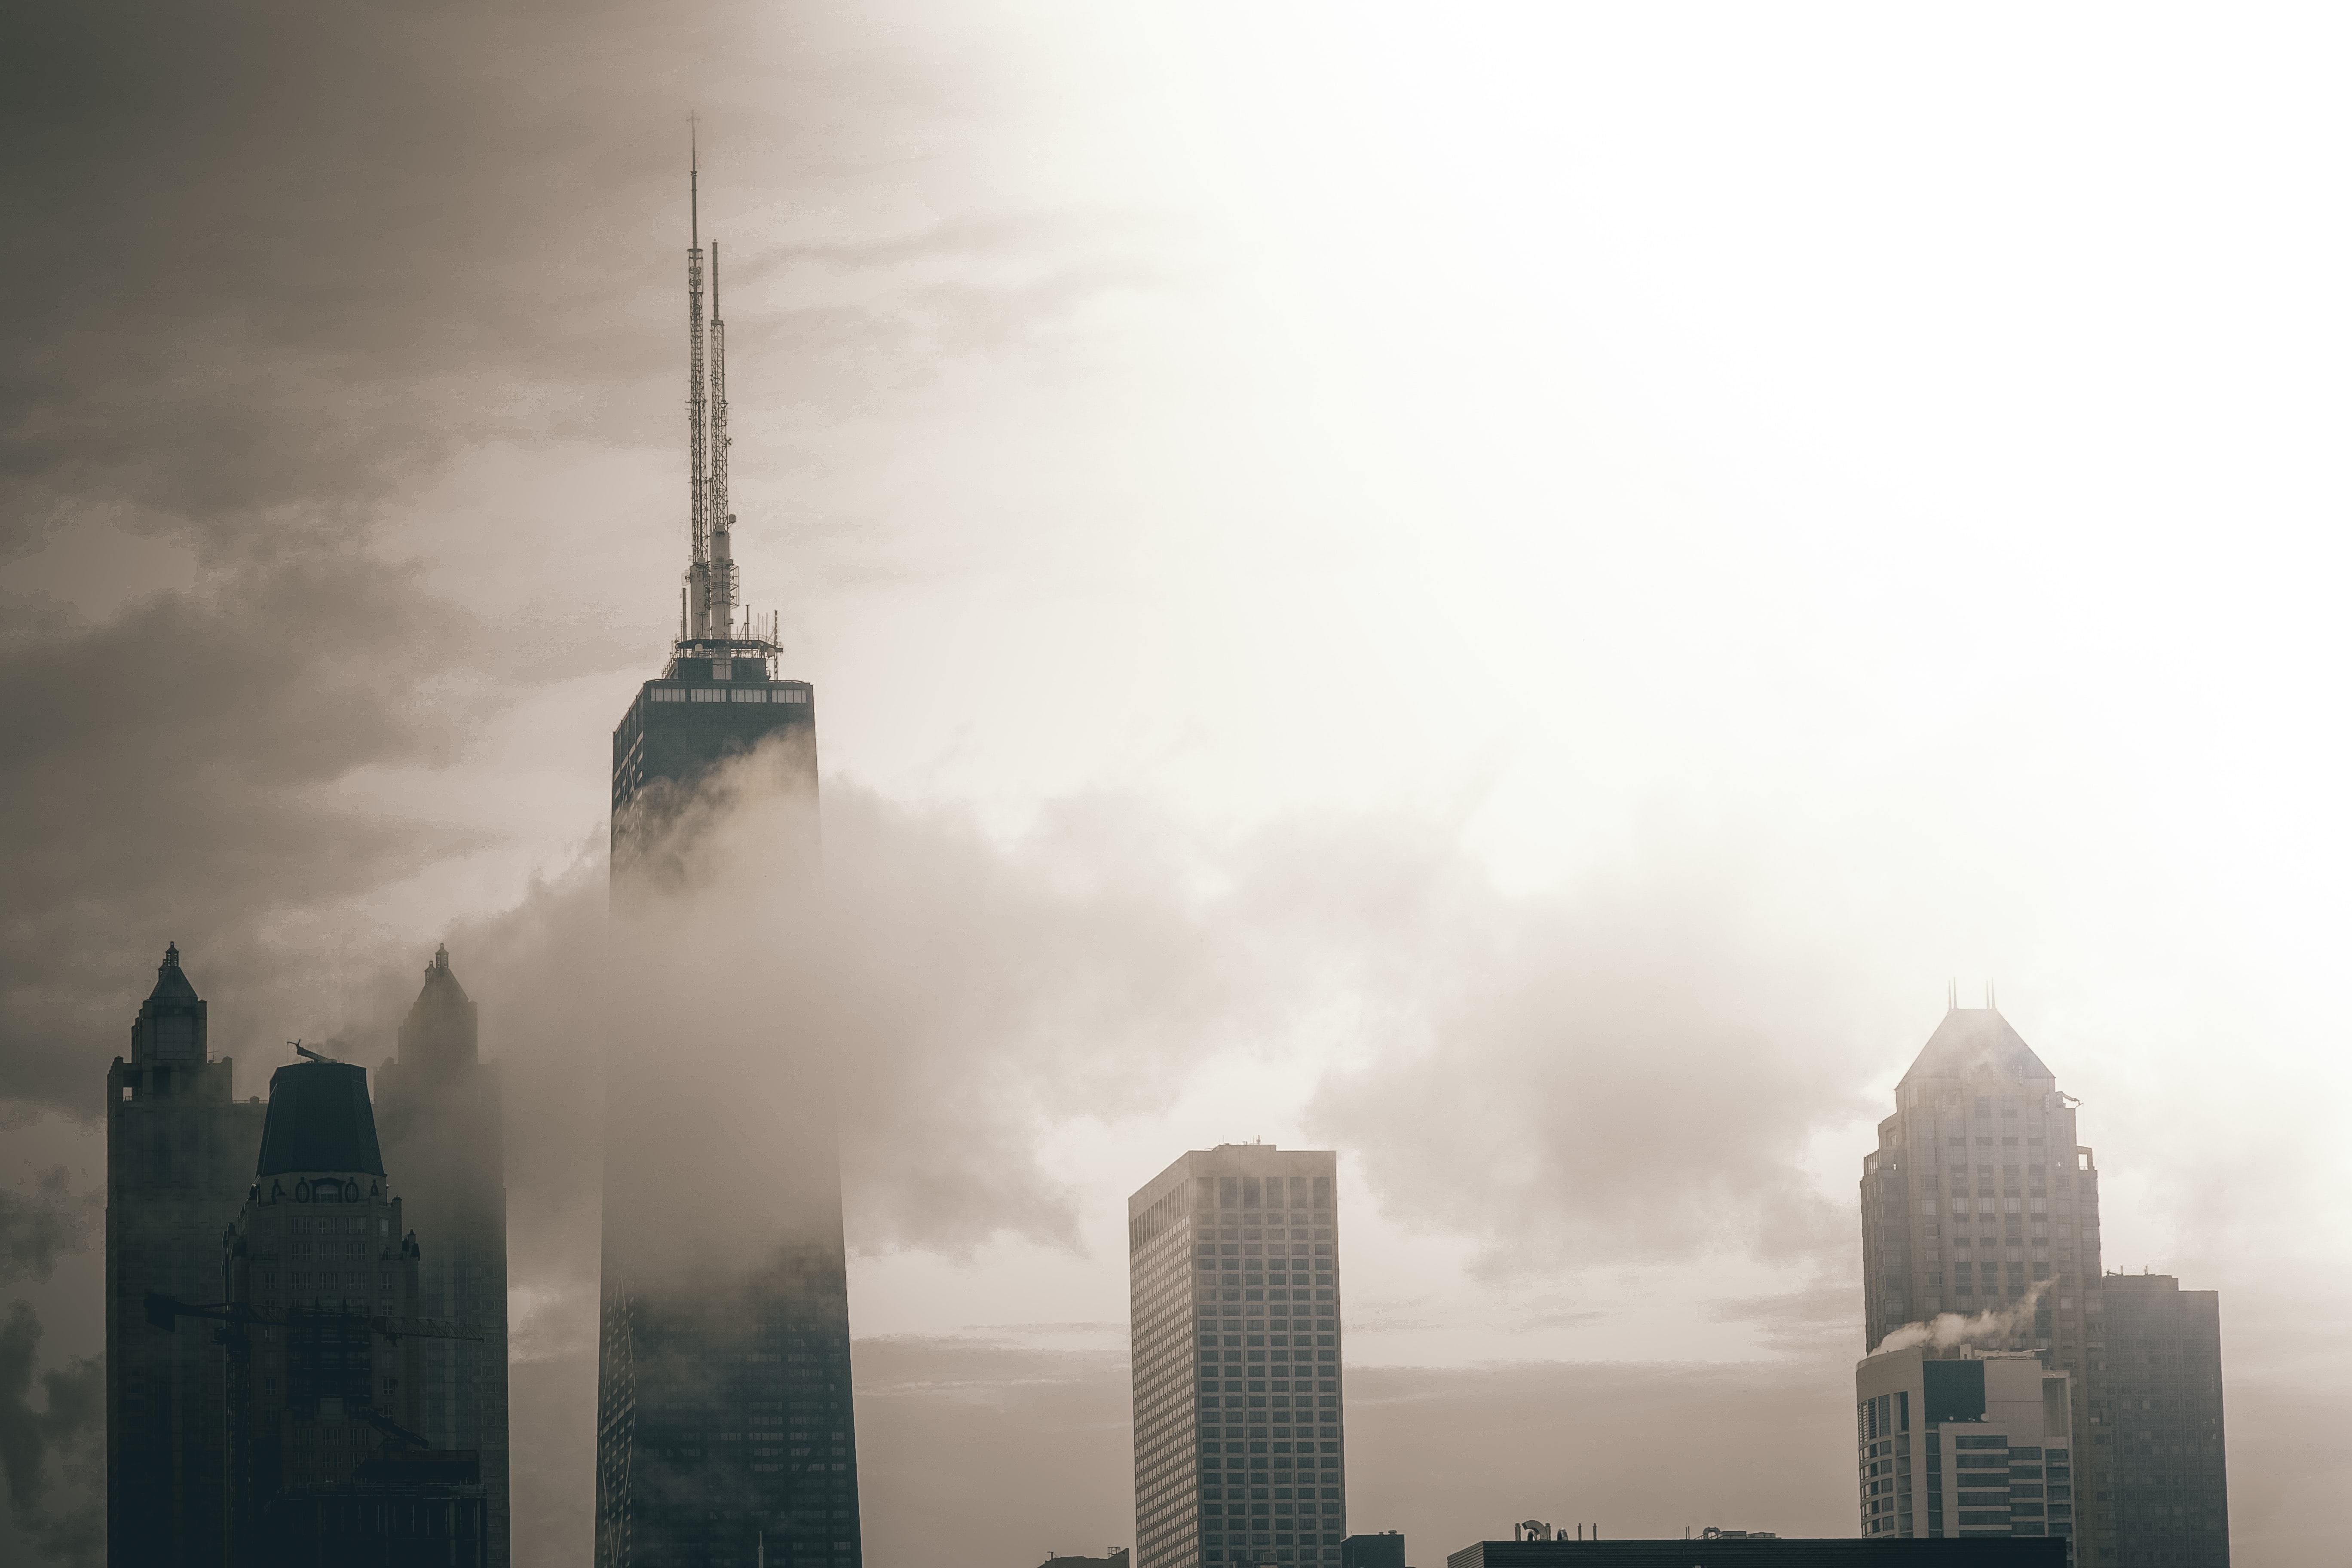 Black and white Chicago cityscape with the tallest building half covered by a cloud